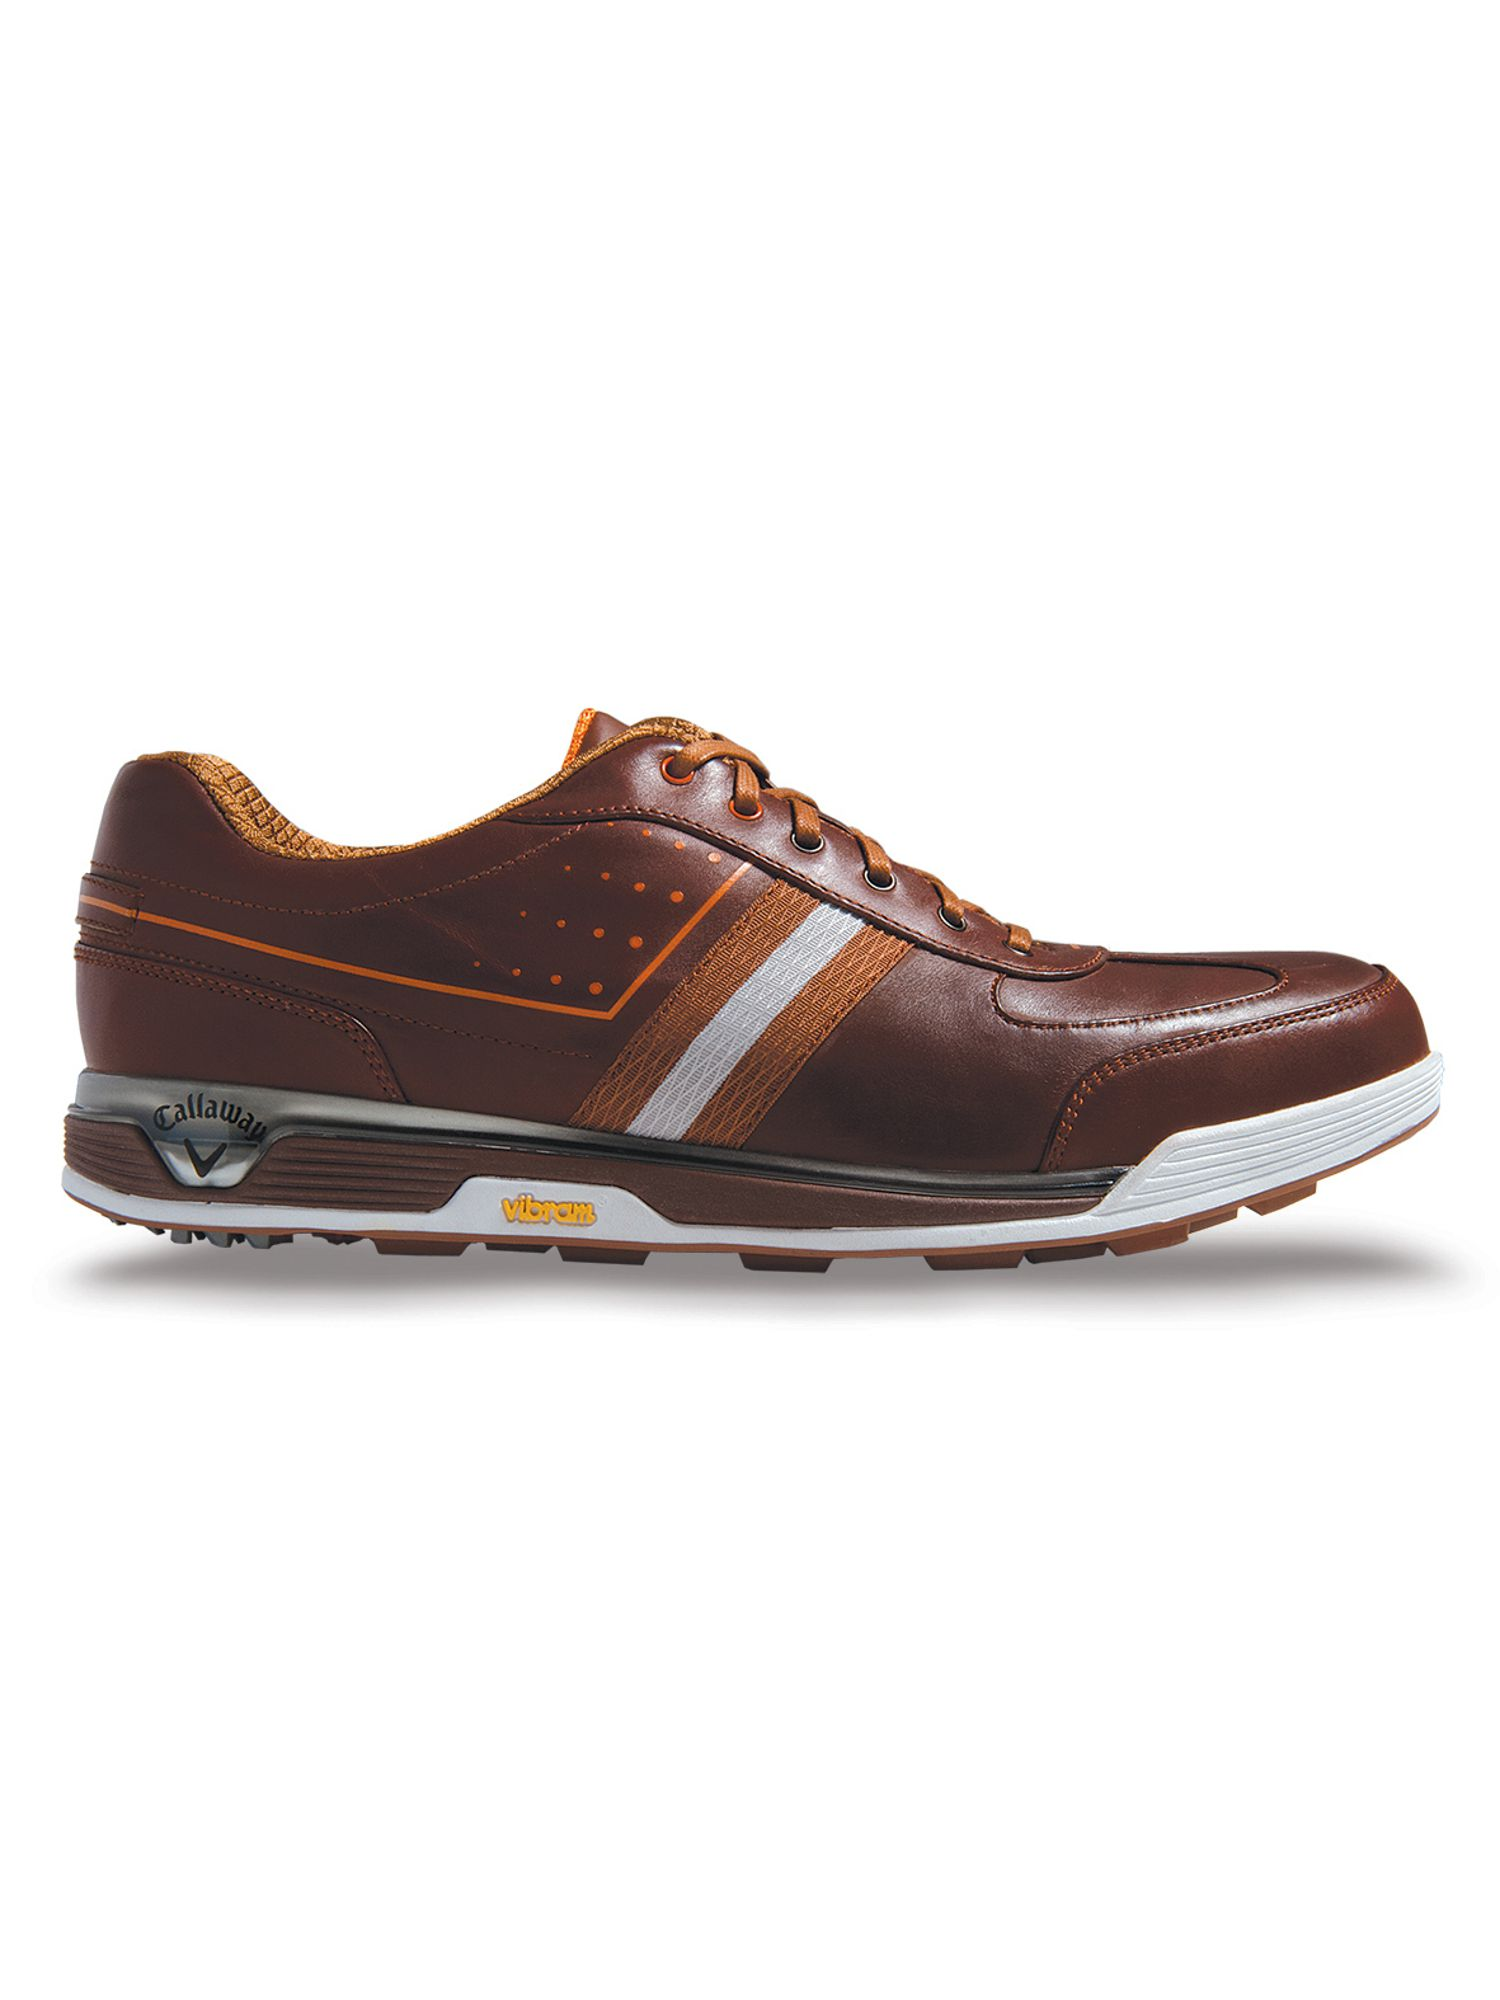 Fortuno golf shoes